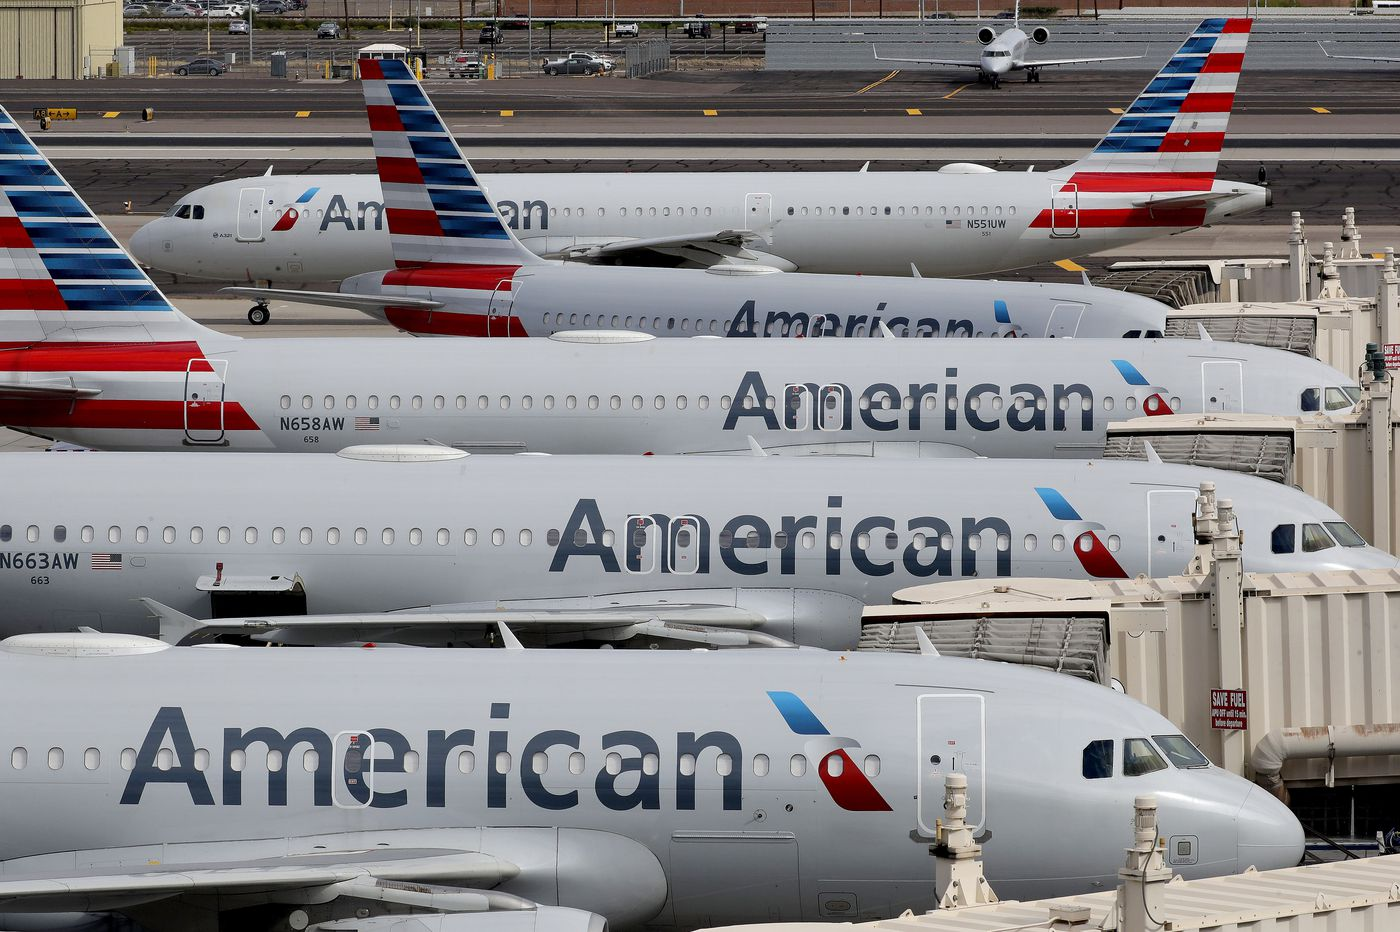 American Airlines warns 25,000 workers they could lose jobs